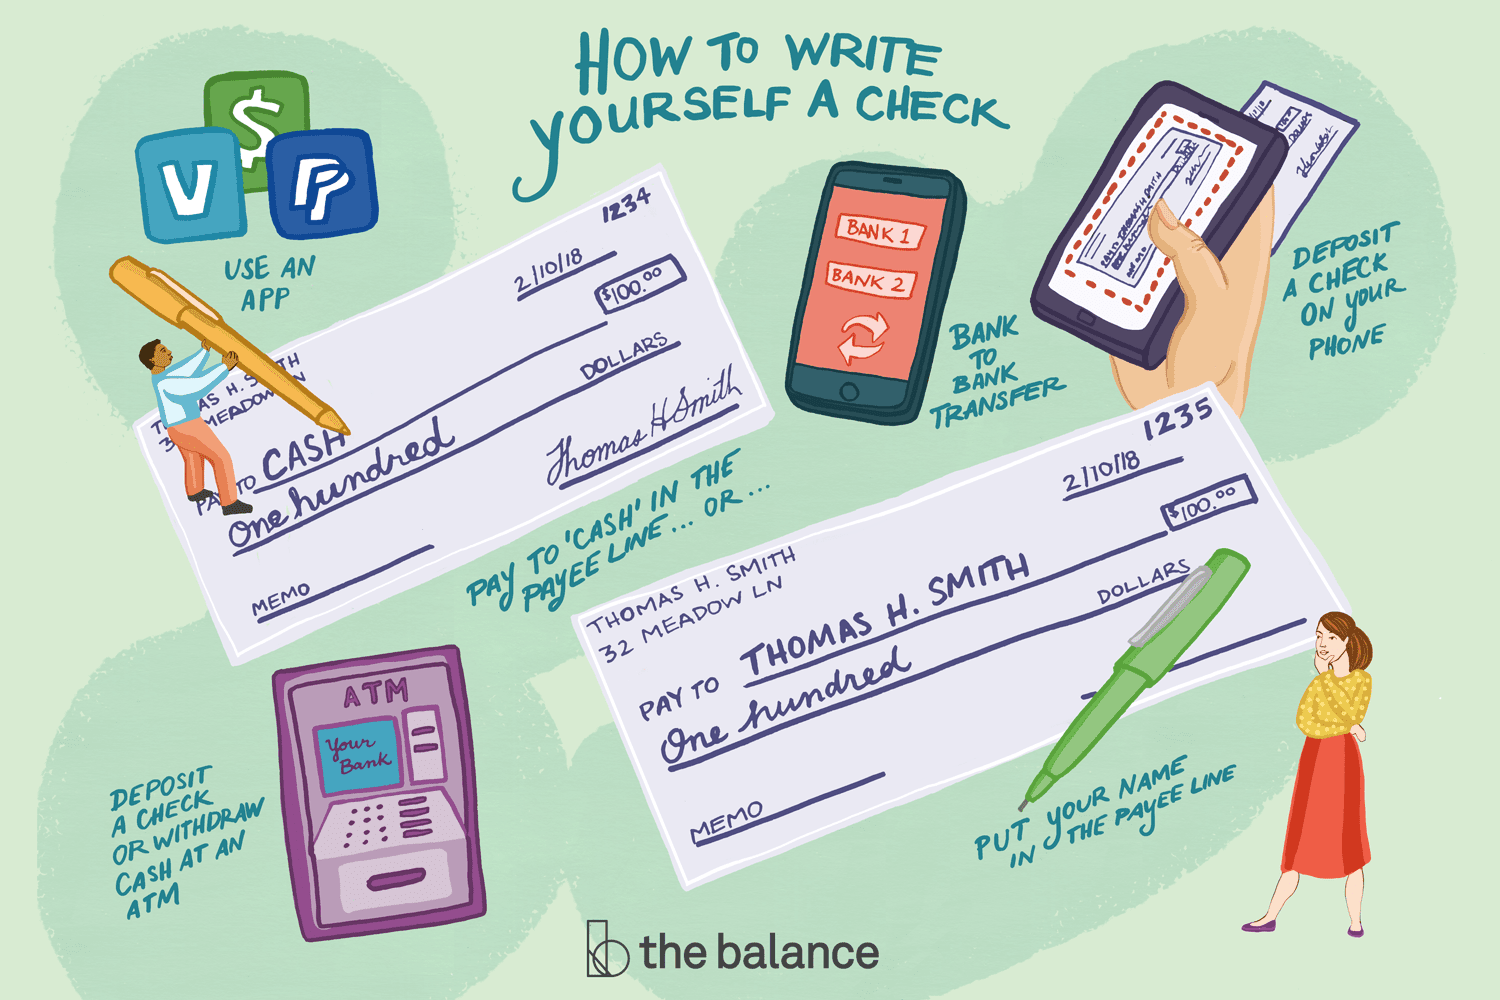 Write A Check To Yourself (Or Move Money Online